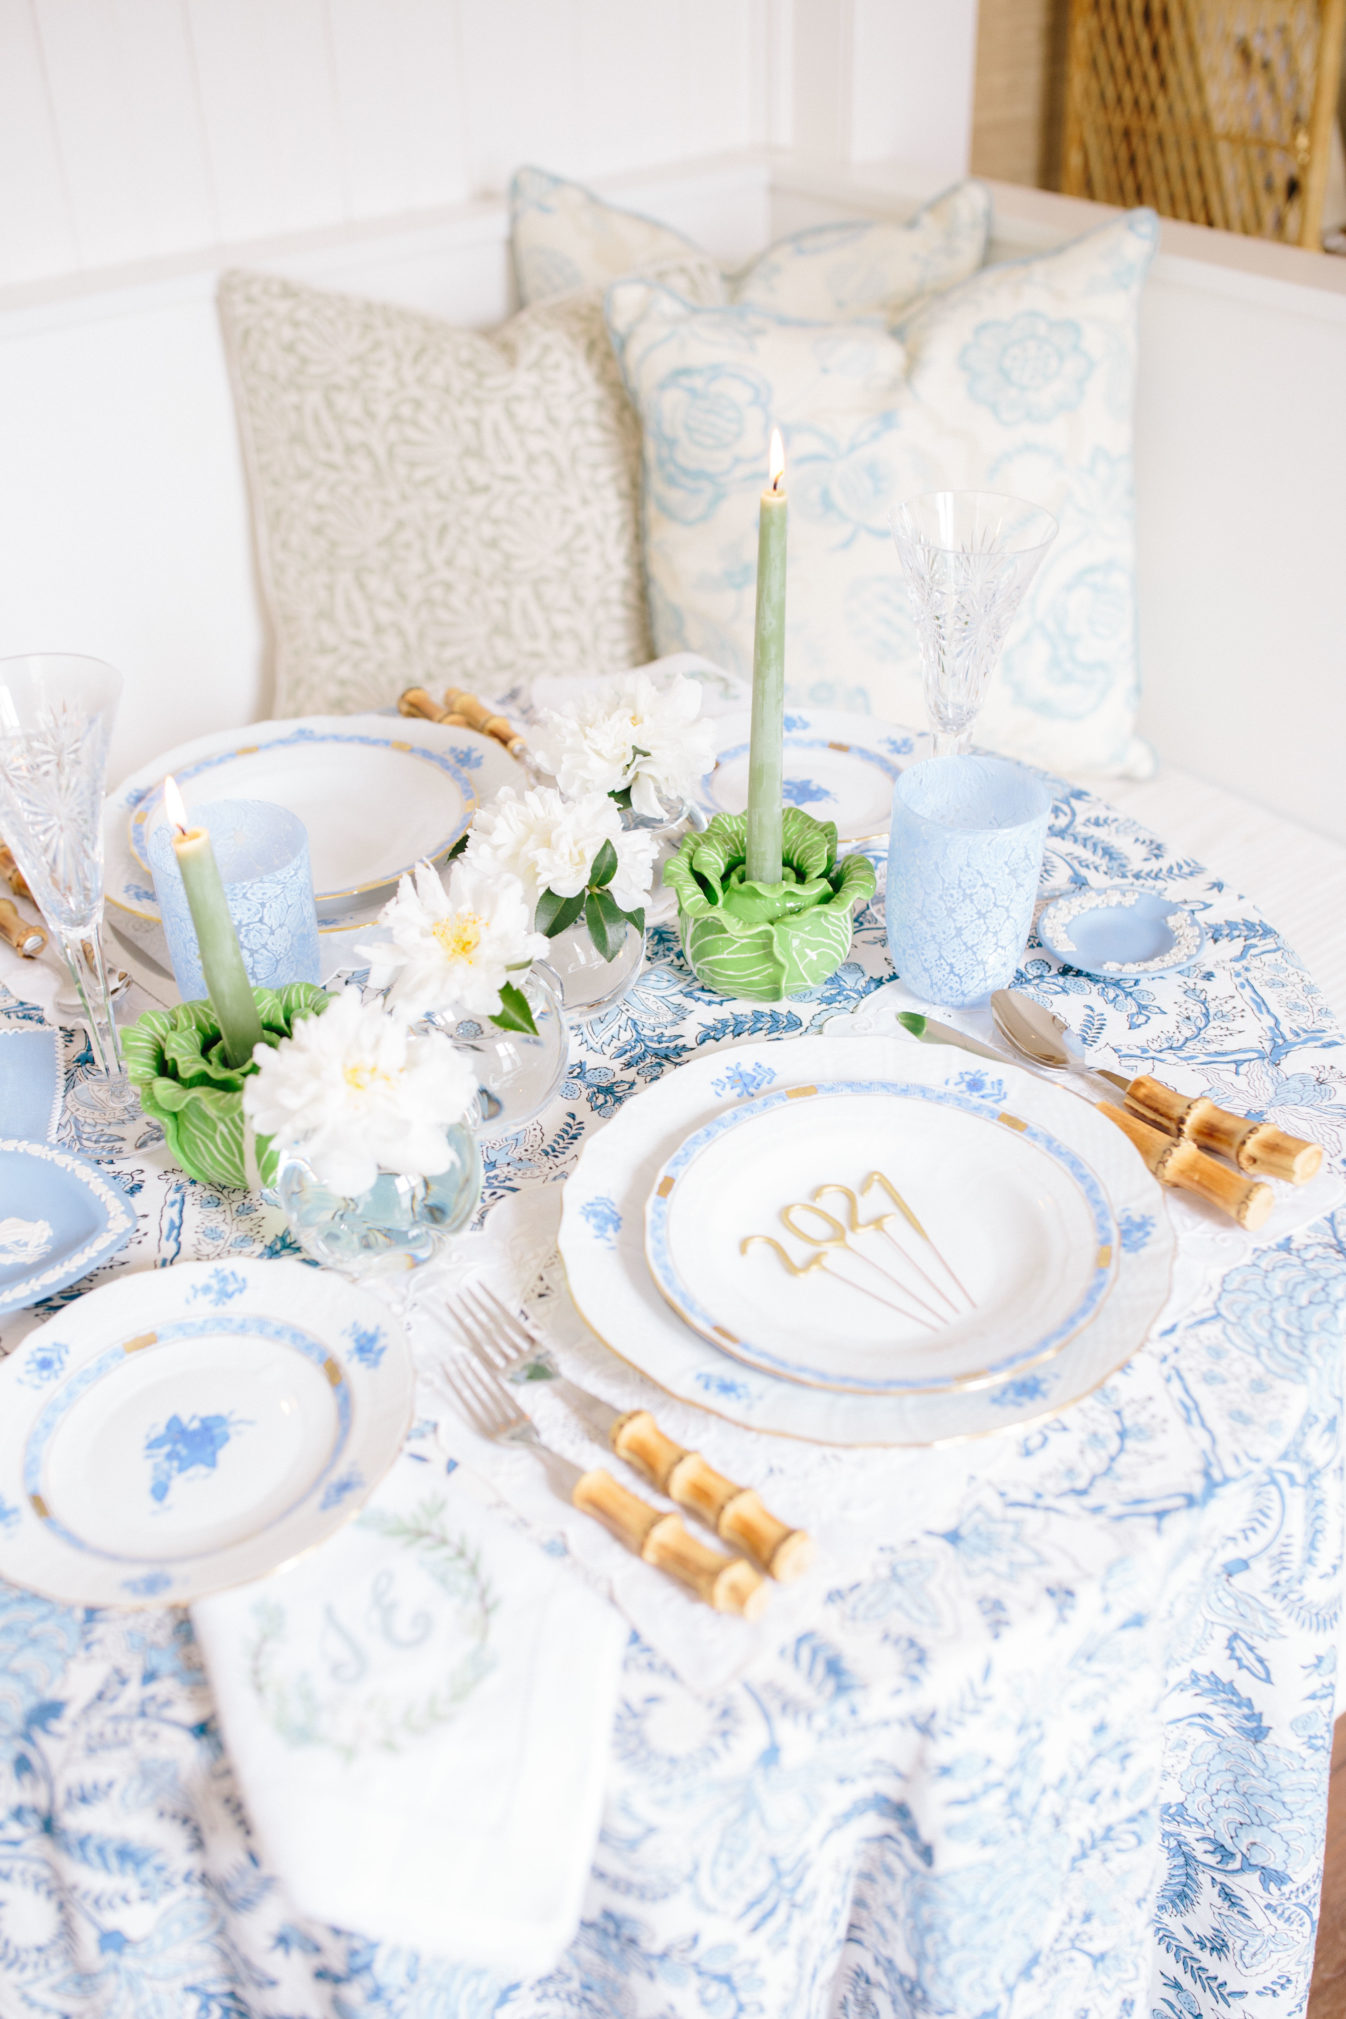 Setting a Fresh Table for the New Year | Rhyme & Reason